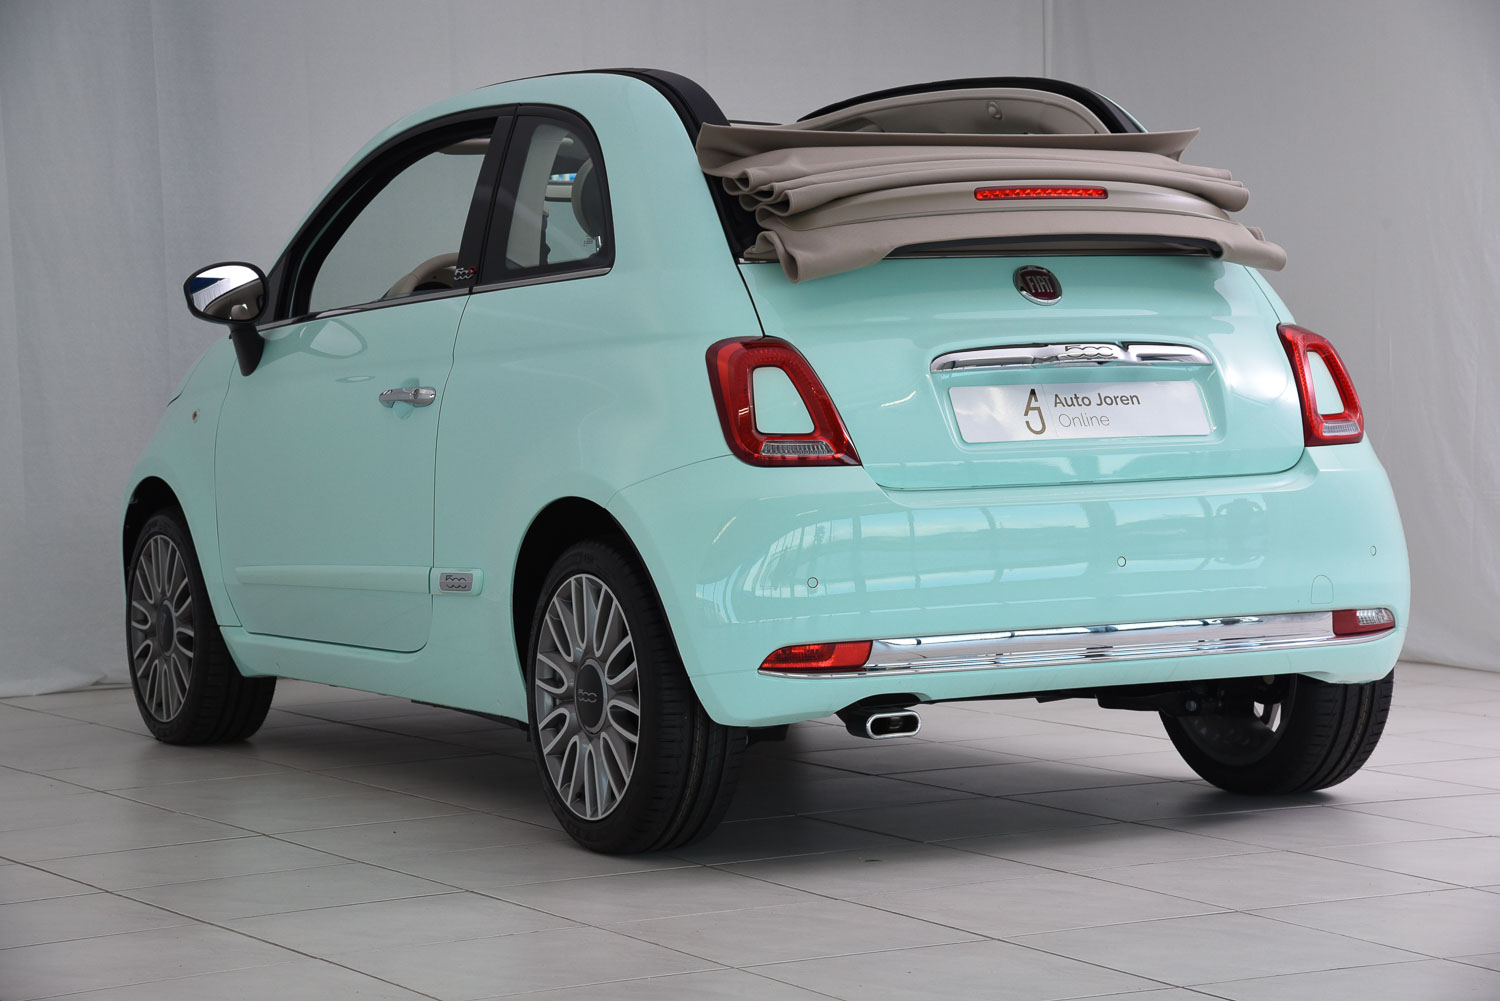 fiat 500 car siku 28 images 2016 fiat 500 reviews and rating motor trend 1 32 fiat 500. Black Bedroom Furniture Sets. Home Design Ideas